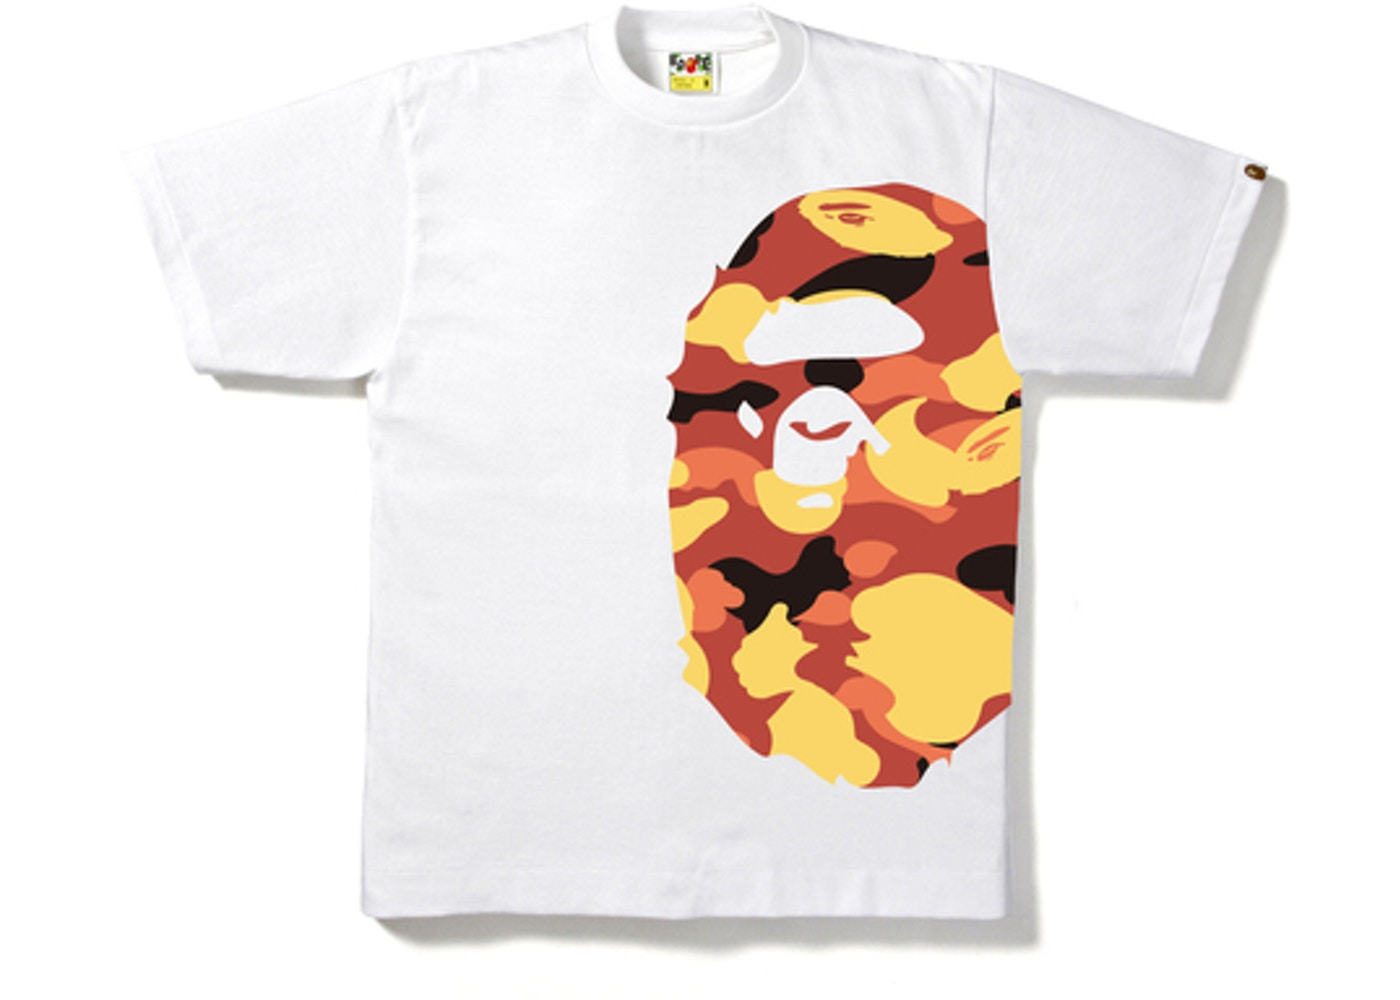 c8110c8f BAPE 1st Camo Side Big Ape Head Tee White/Red. 1st Camo Side Big Ape Head